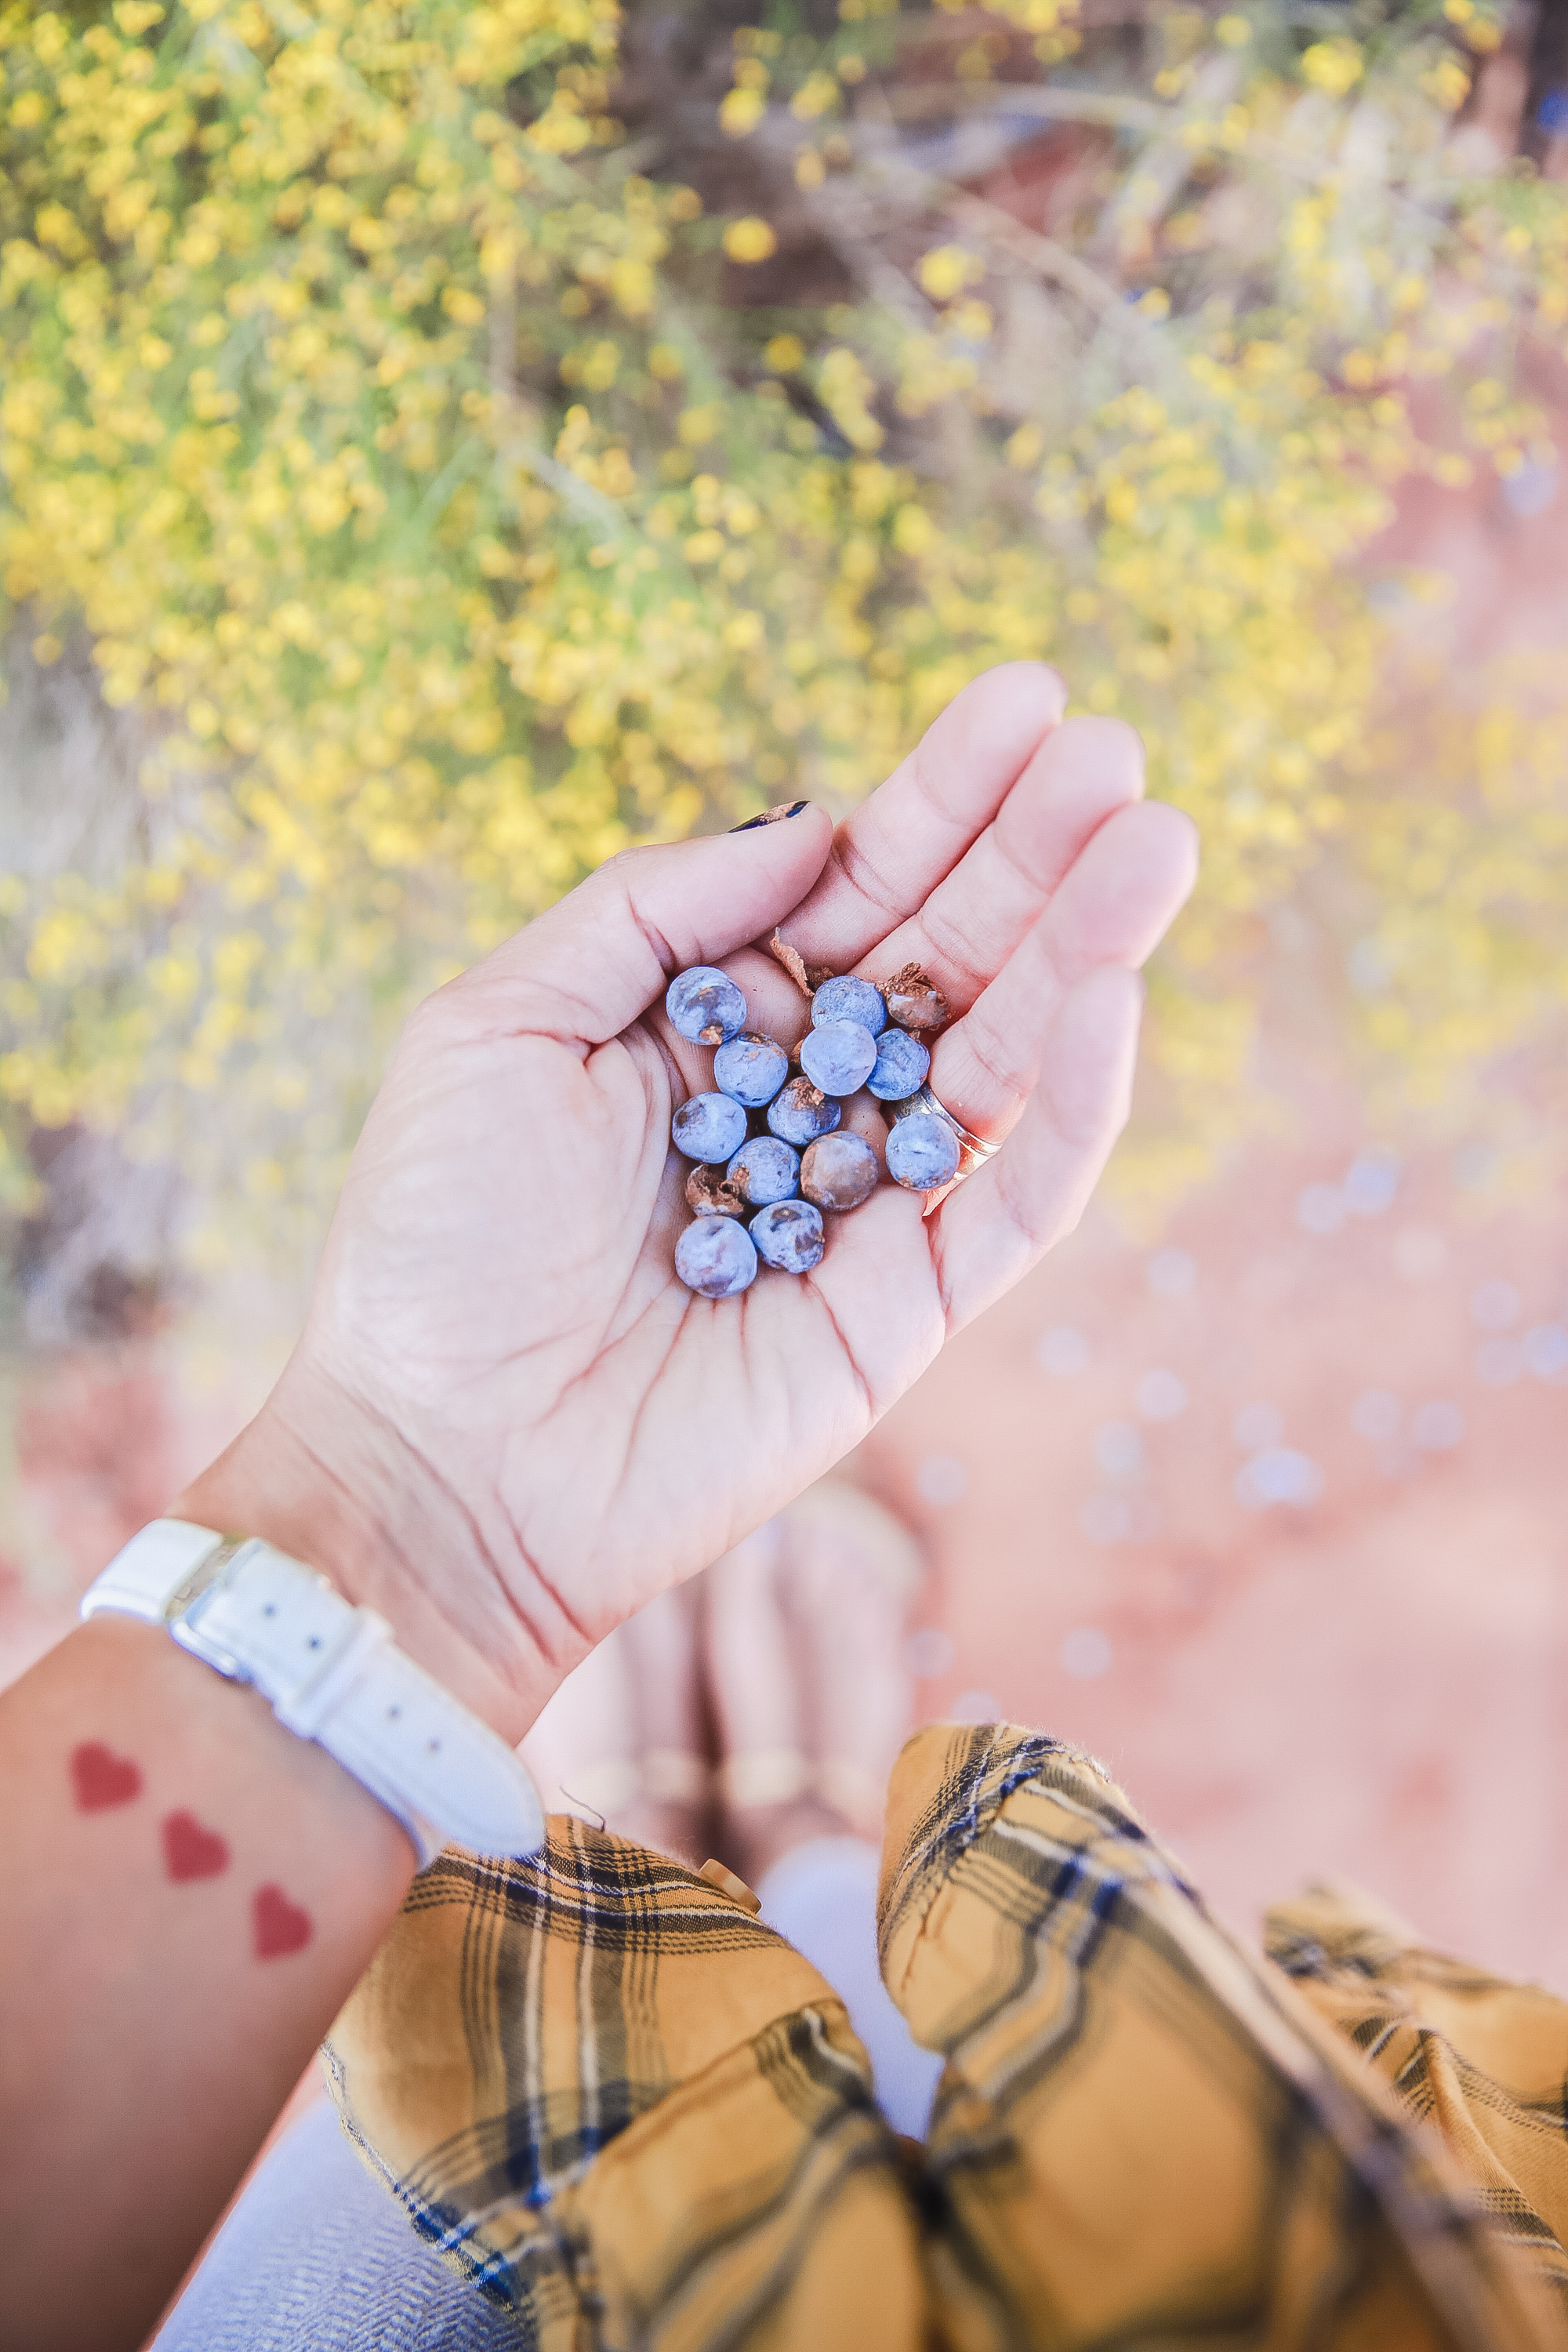 Juniper Berries. Random fact: this is where gin comes from. If only I had some tonic and a few limes! ;)